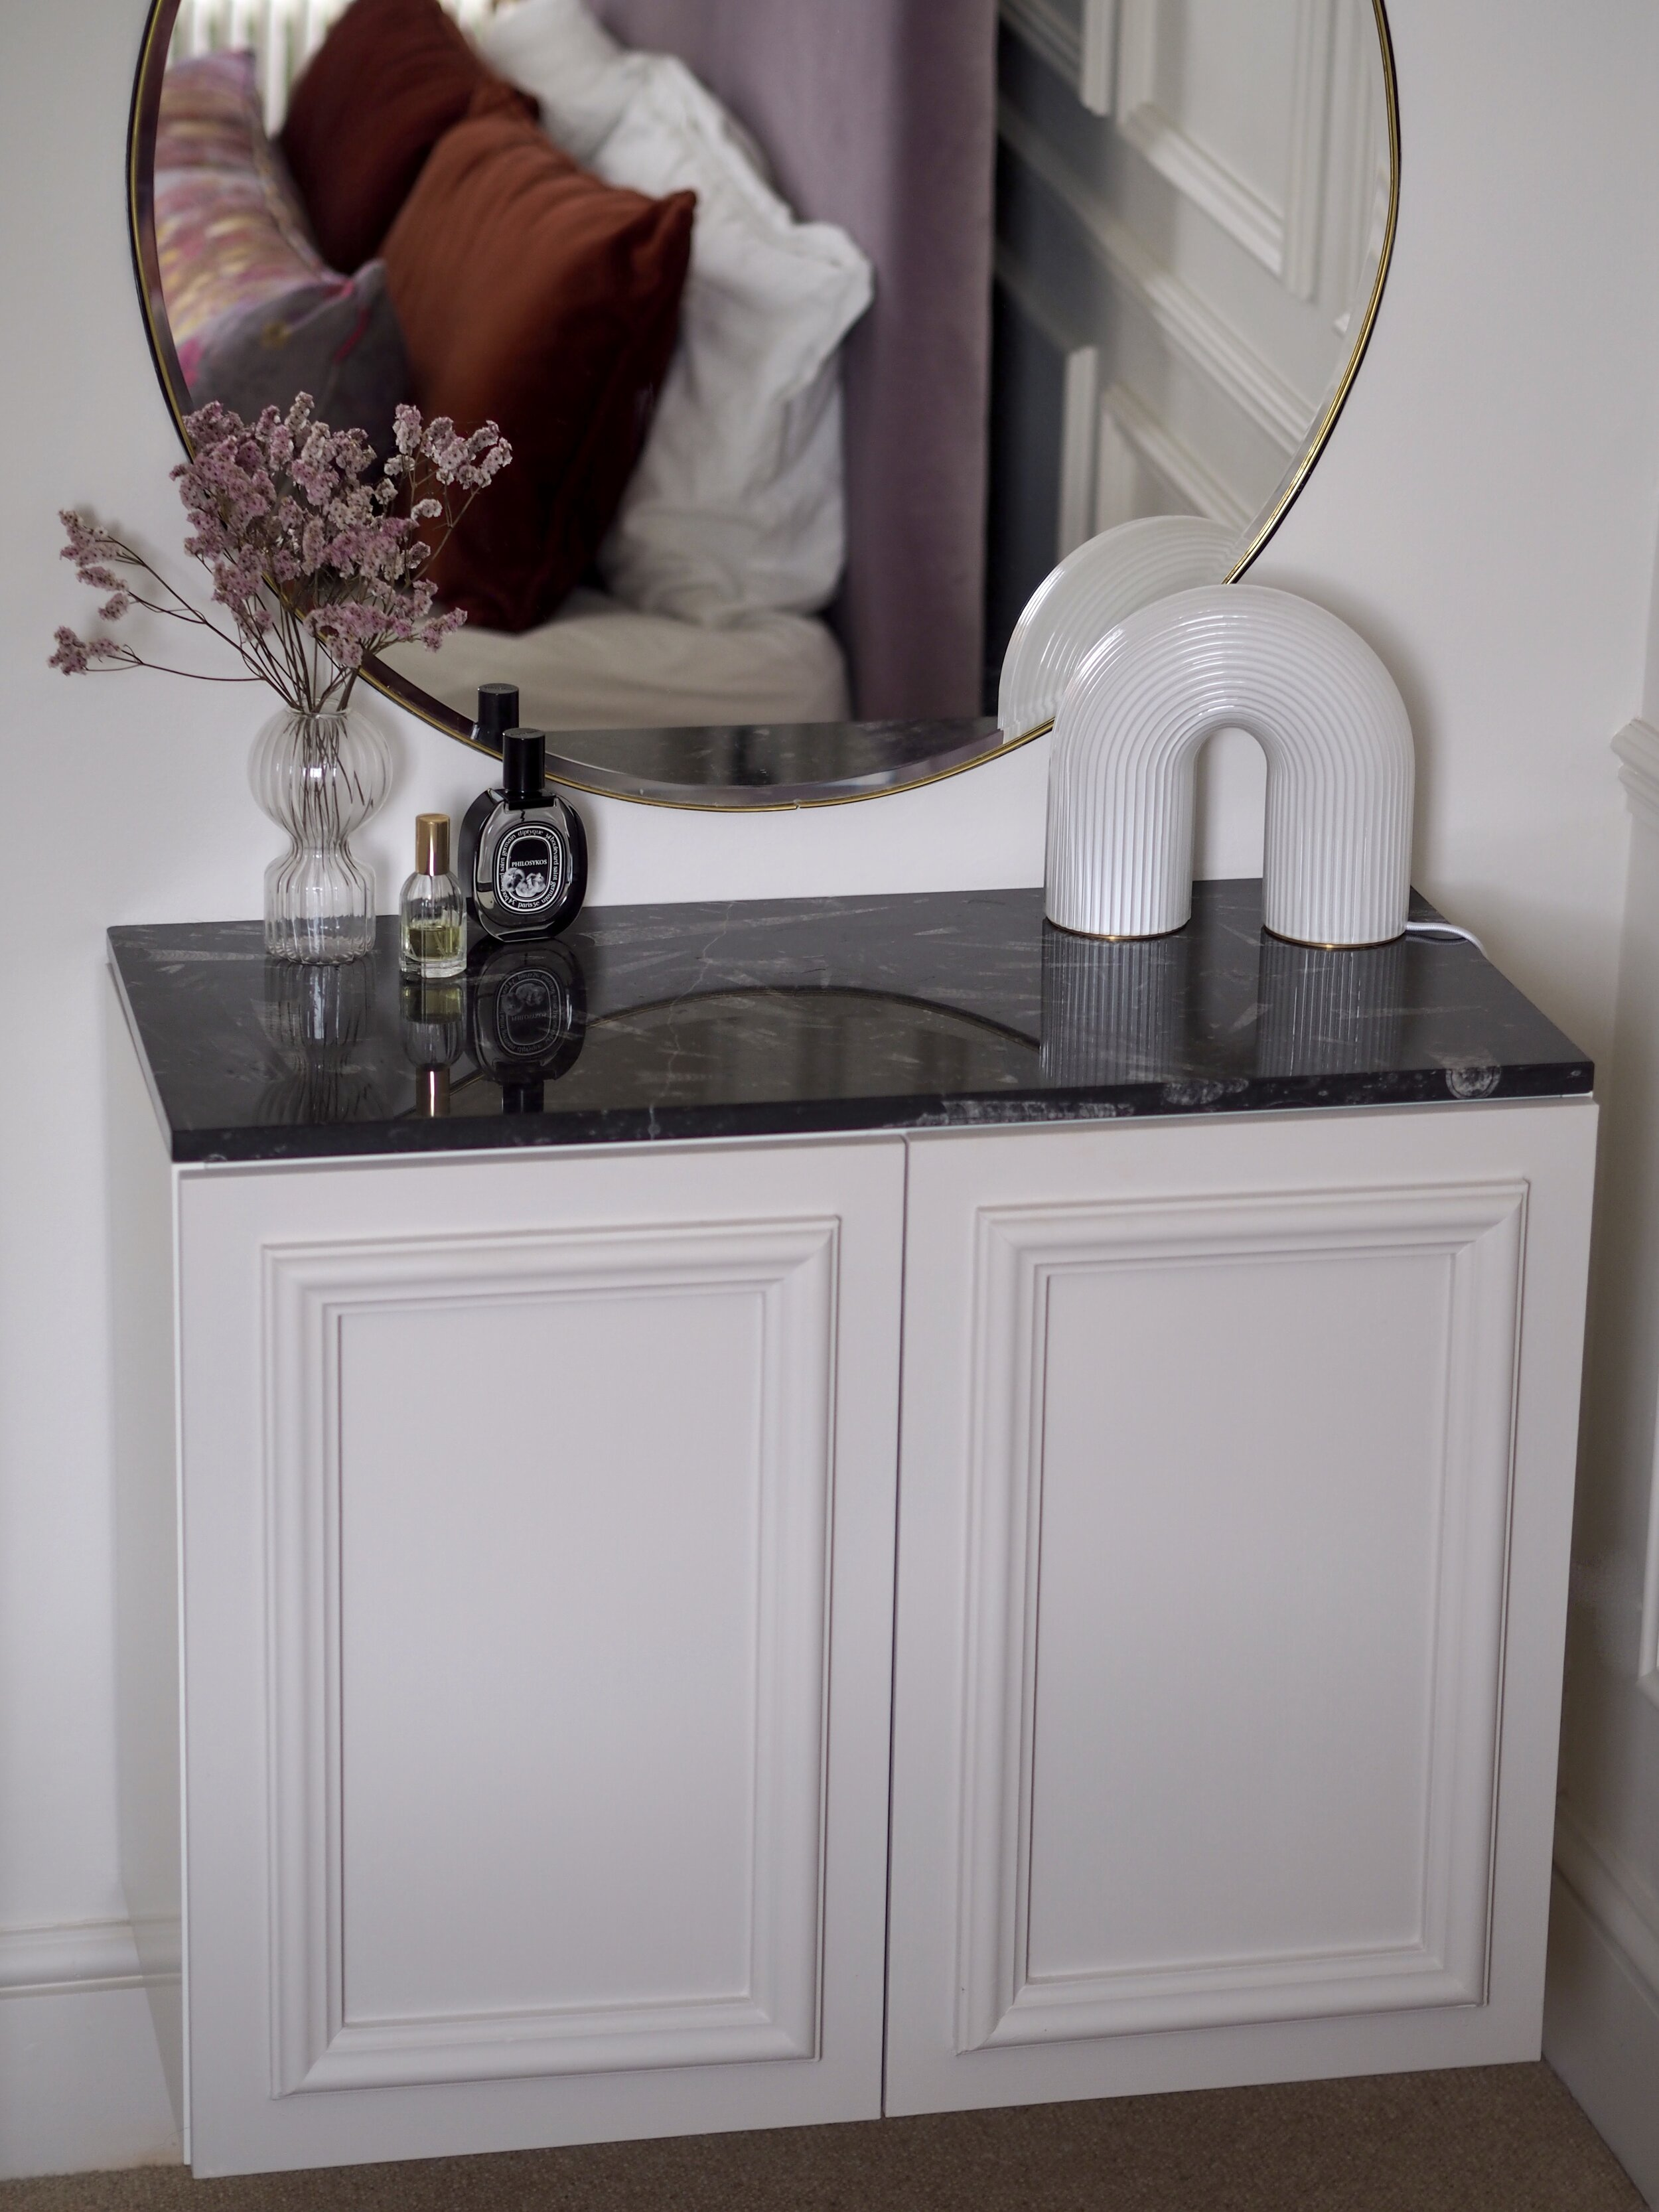 Diy Floating Dressing Table Ikea Hack Melanie Lissack Interiors